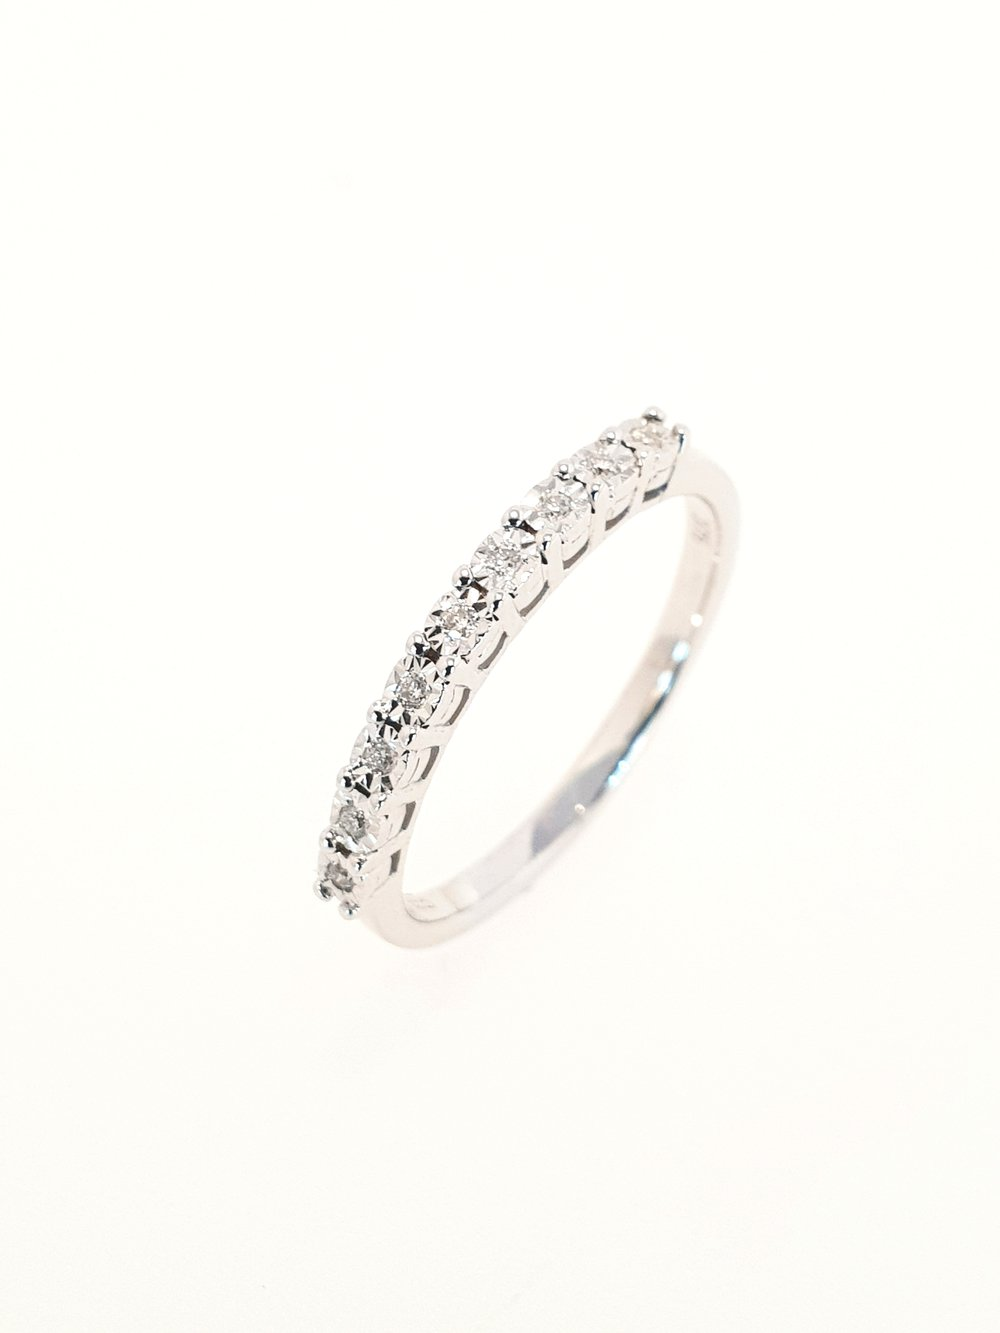 Eternity 9 Stone Diamond Ring, 9ct White Gold  .13 Total Carat Weight  Stock Code: G1956  £460